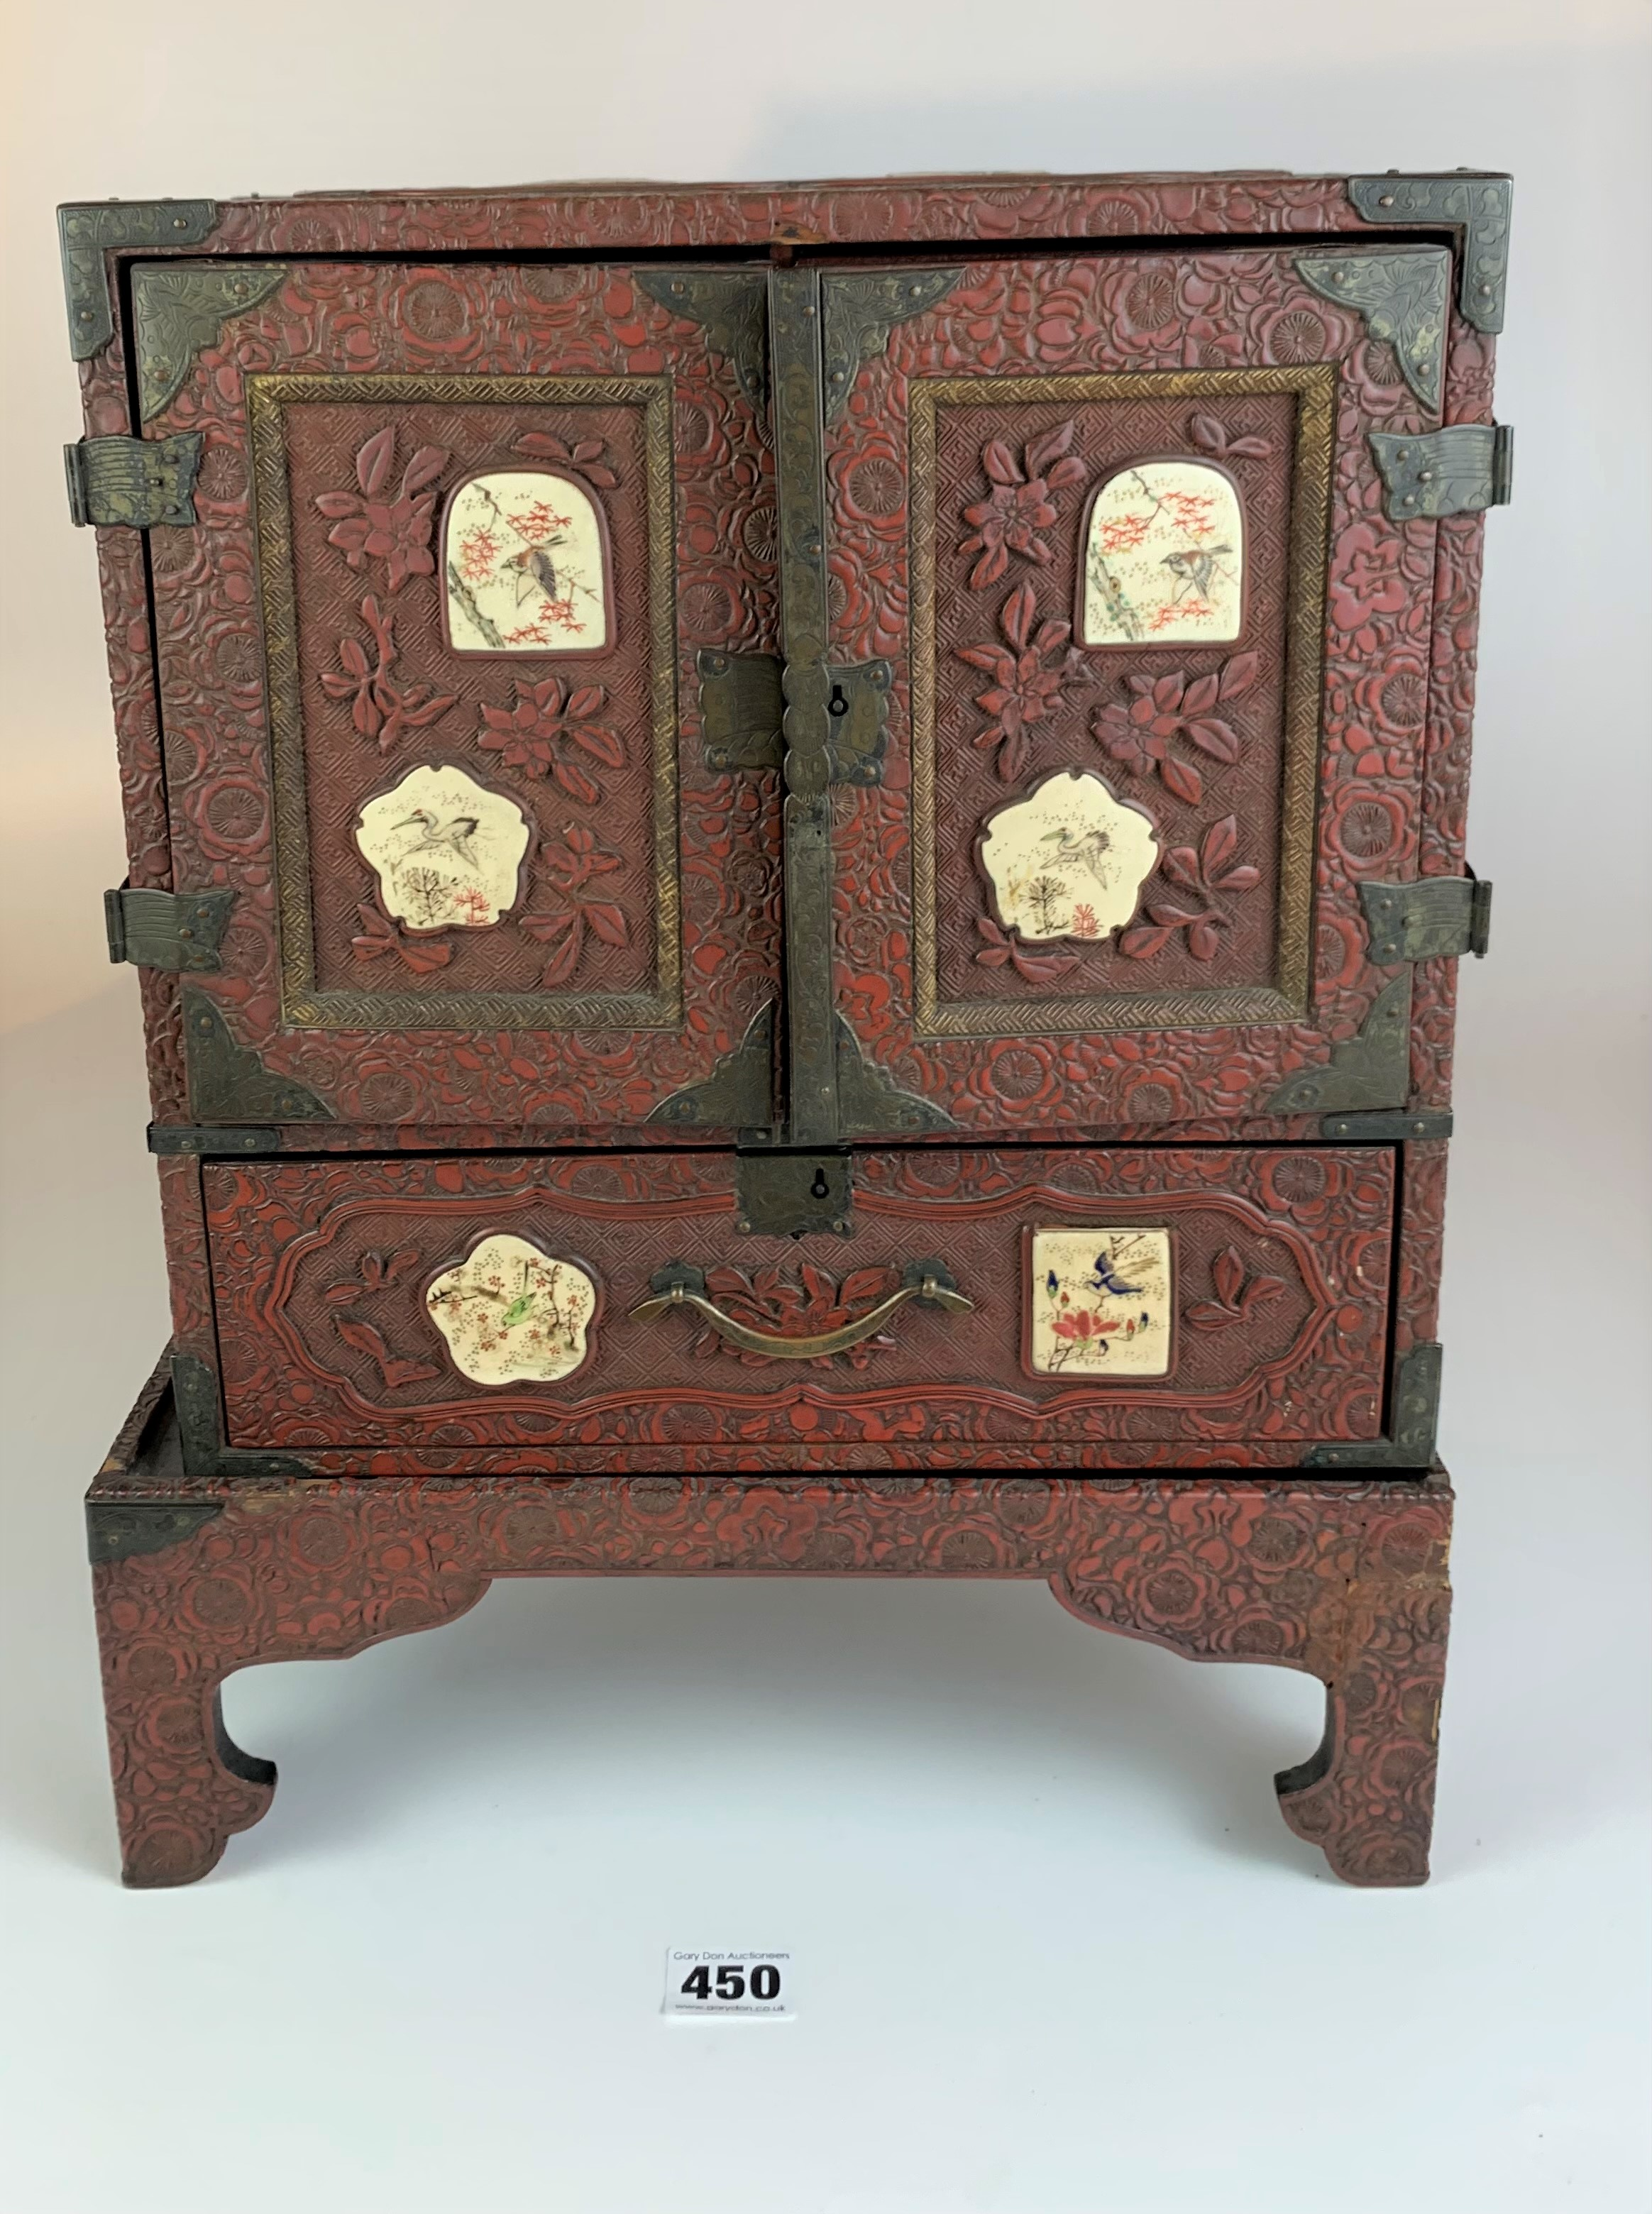 Small Japanese carved red cinnabar lacquer table cabinet with 8 Satsuma plaques on a matching stand.